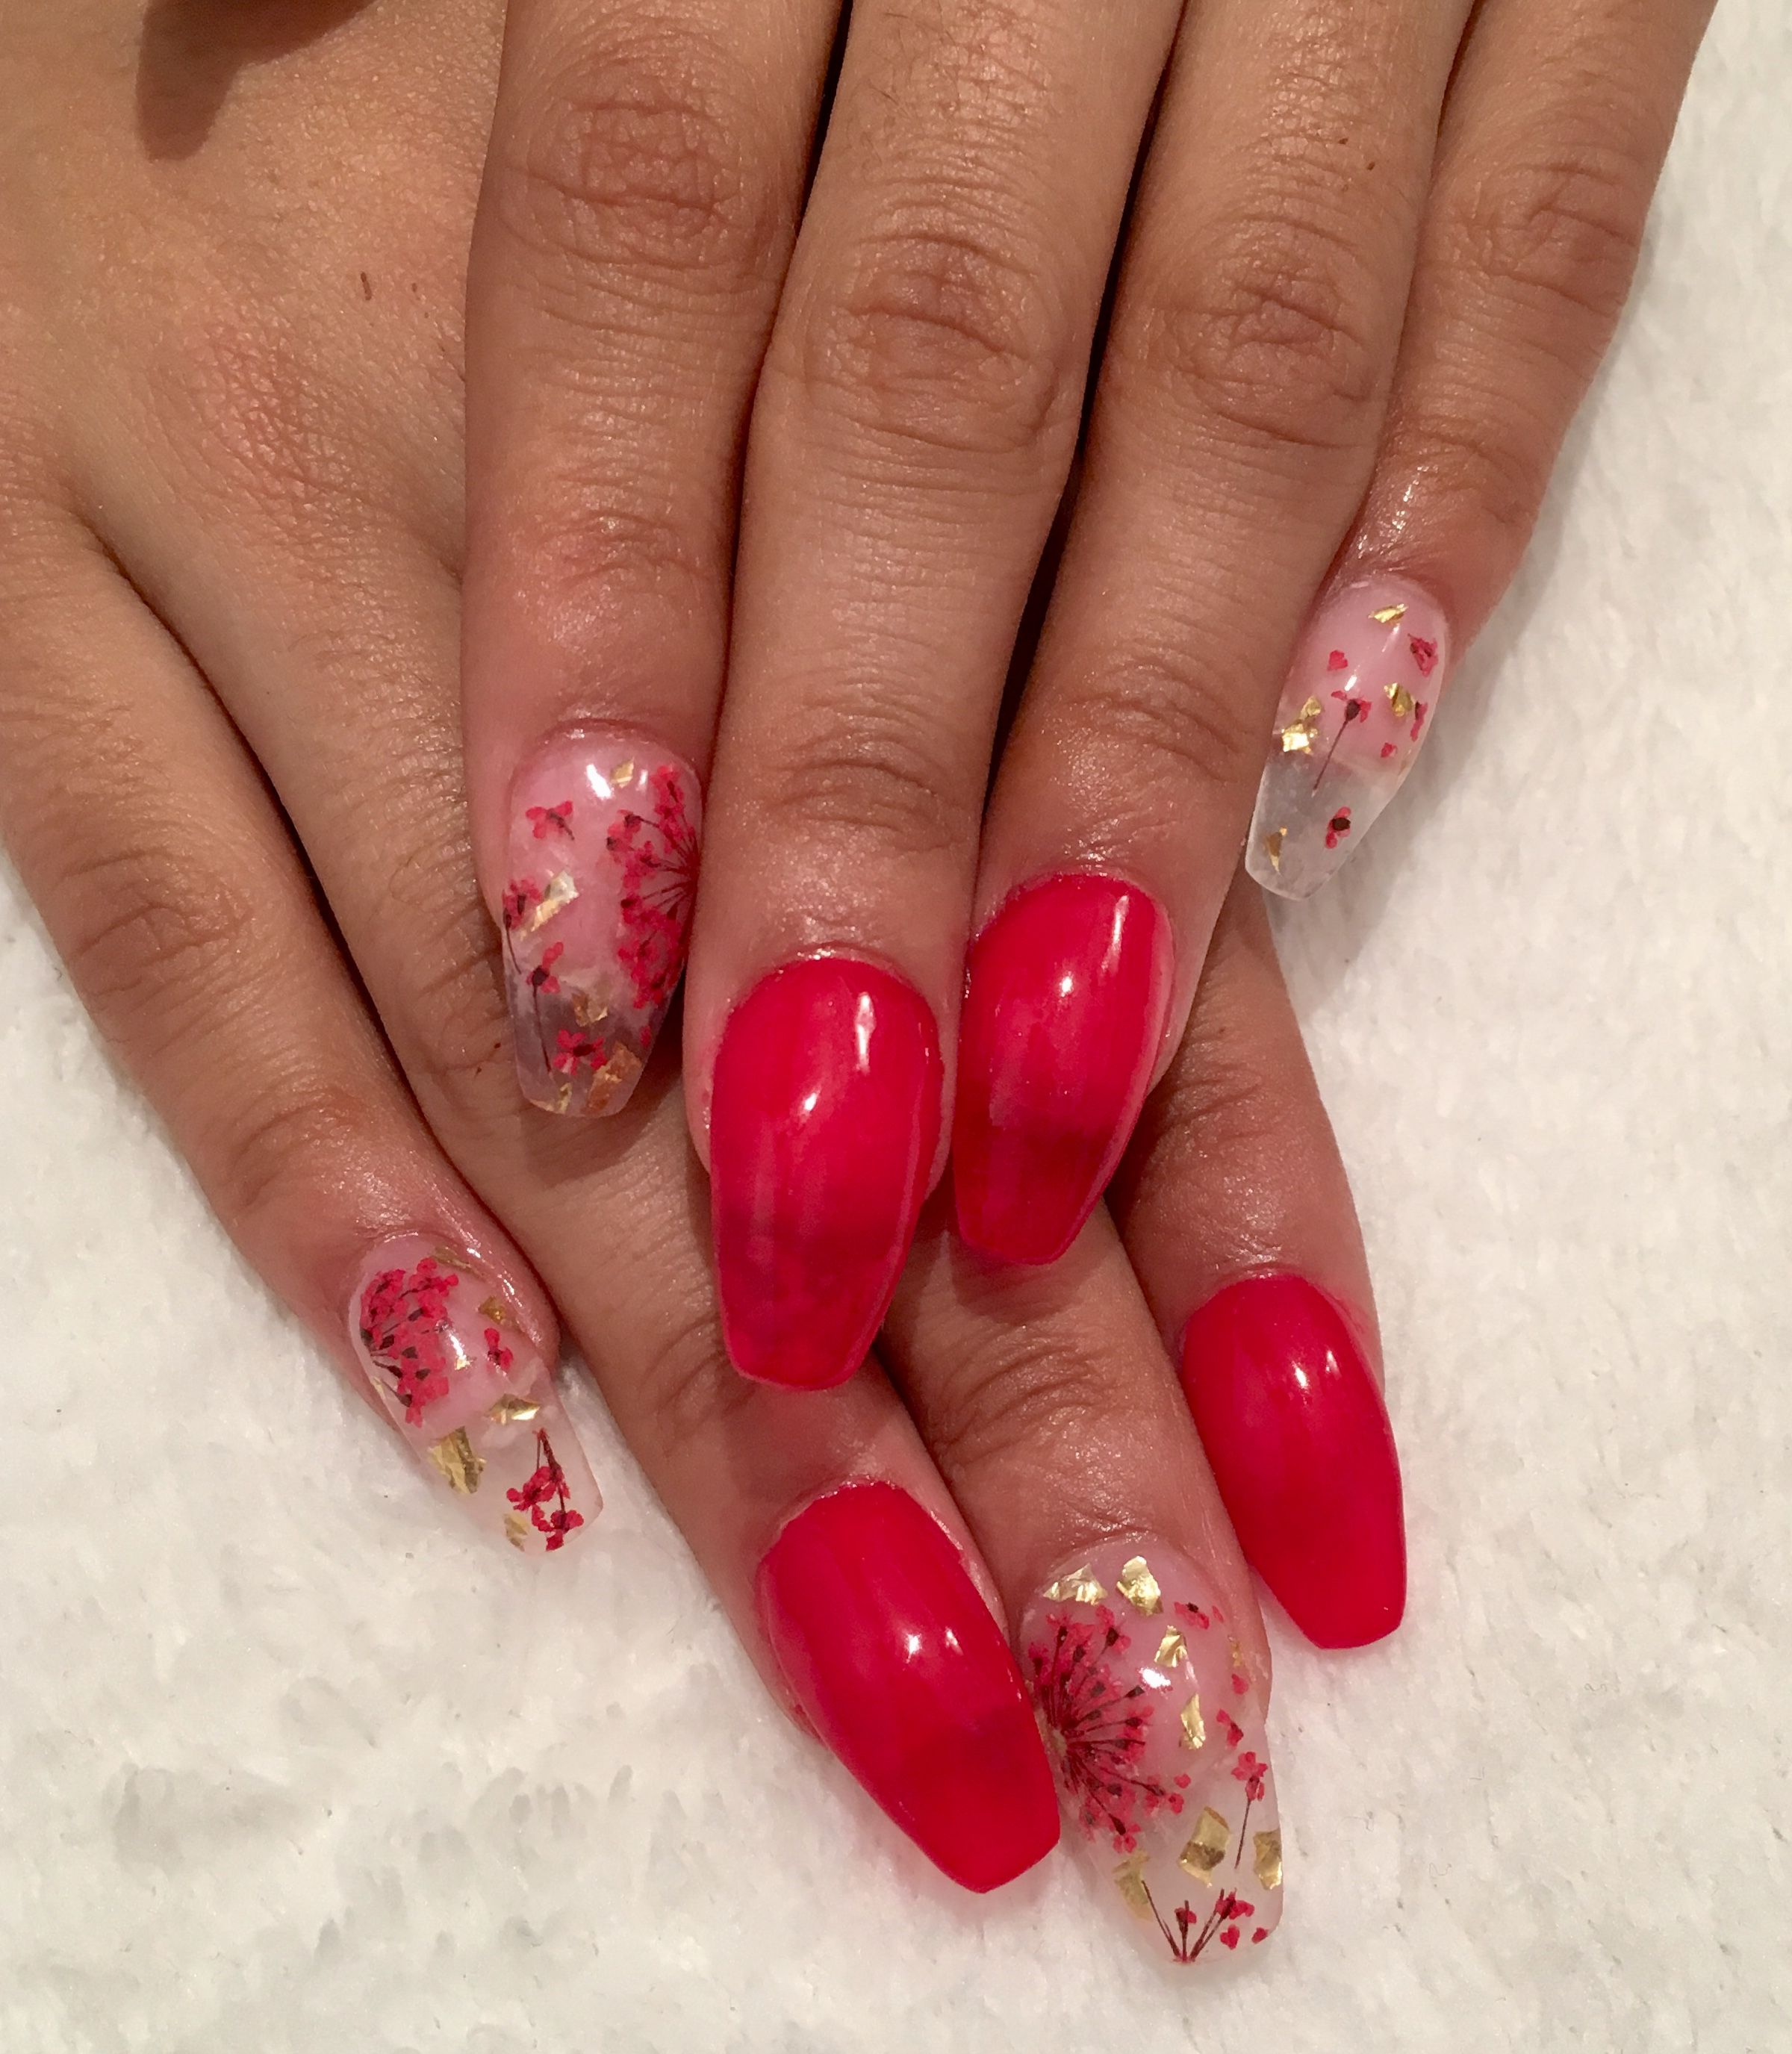 Red Nails With Clear Nail Accents With Gold Flakes And Red Flowers In Bedded In Nails Gold Nails Clear Nails Red Nails